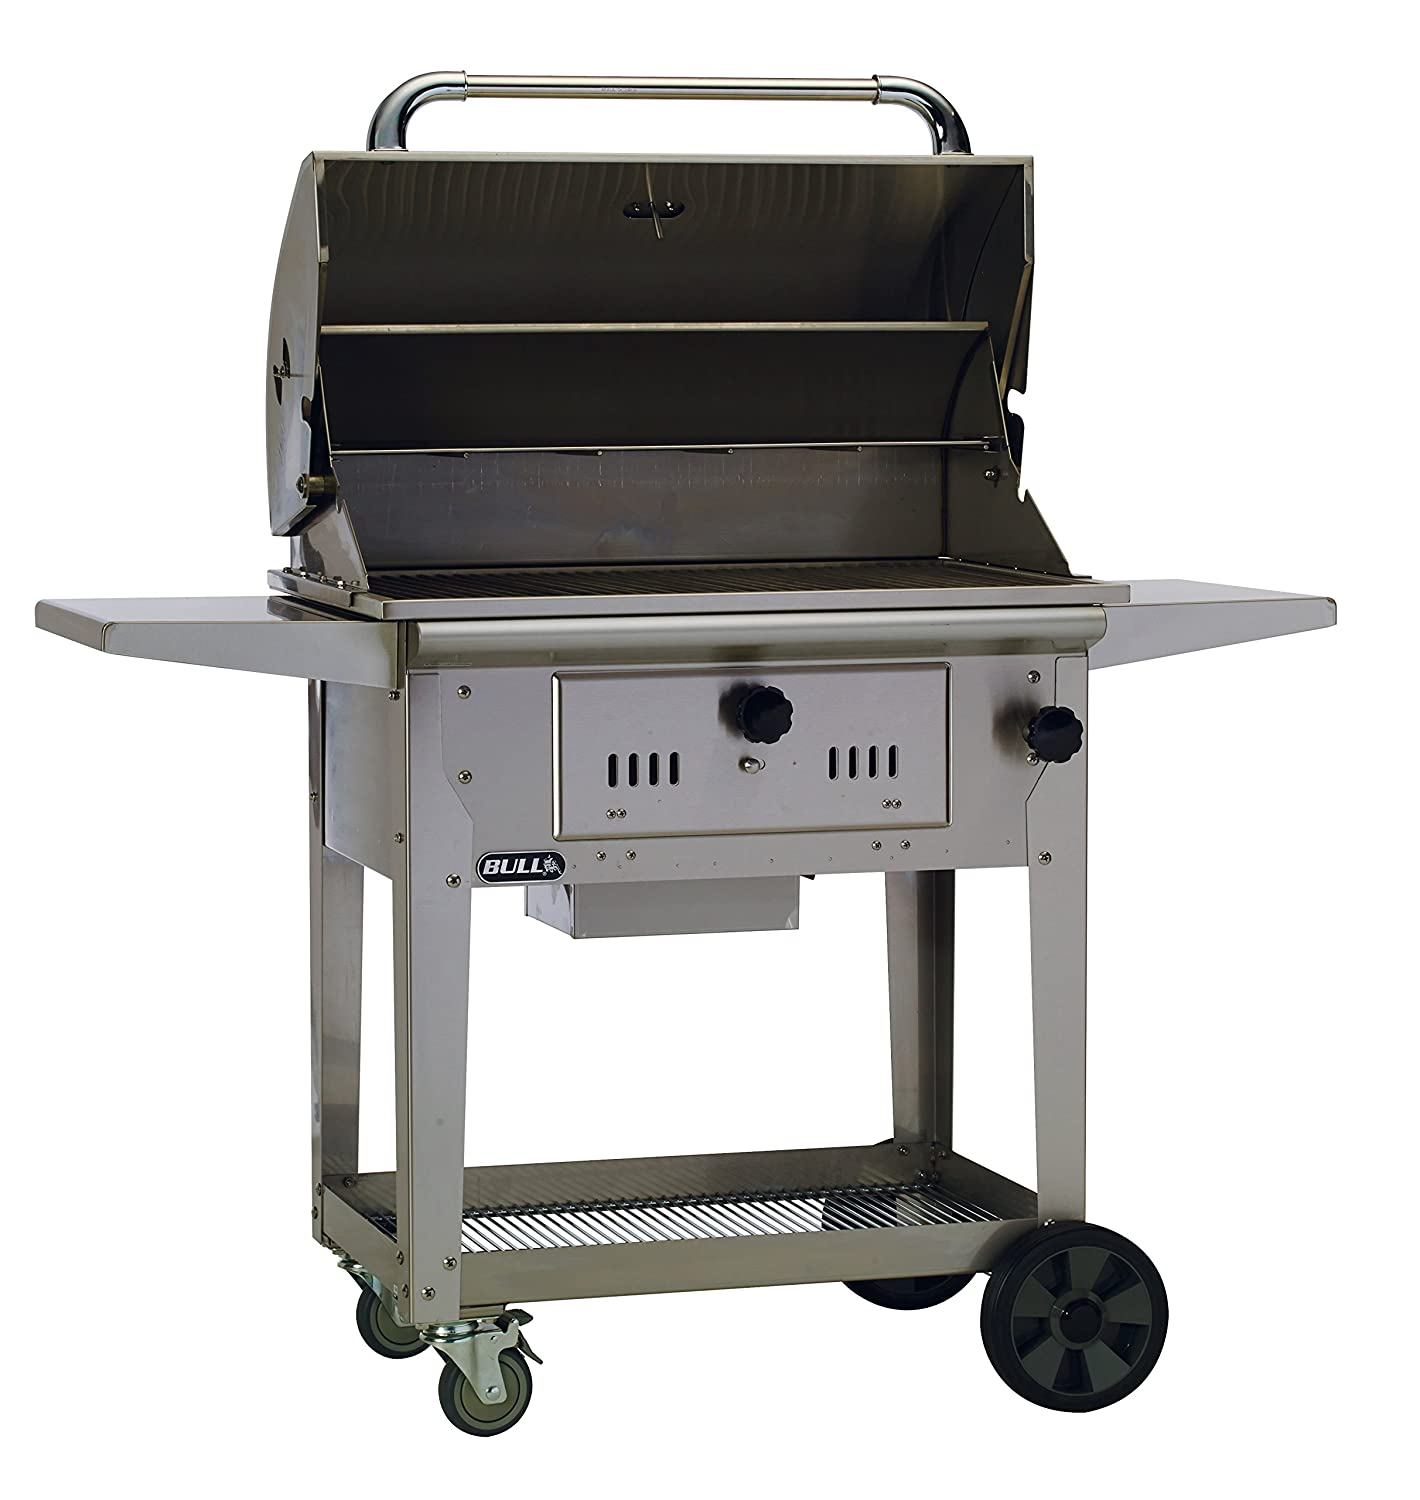 Amazon.com : Bull Outdoor Products 67531 Bison Charcoal Stainless Steel  Grill with Cart : Freestanding Grills : Garden & Outdoor